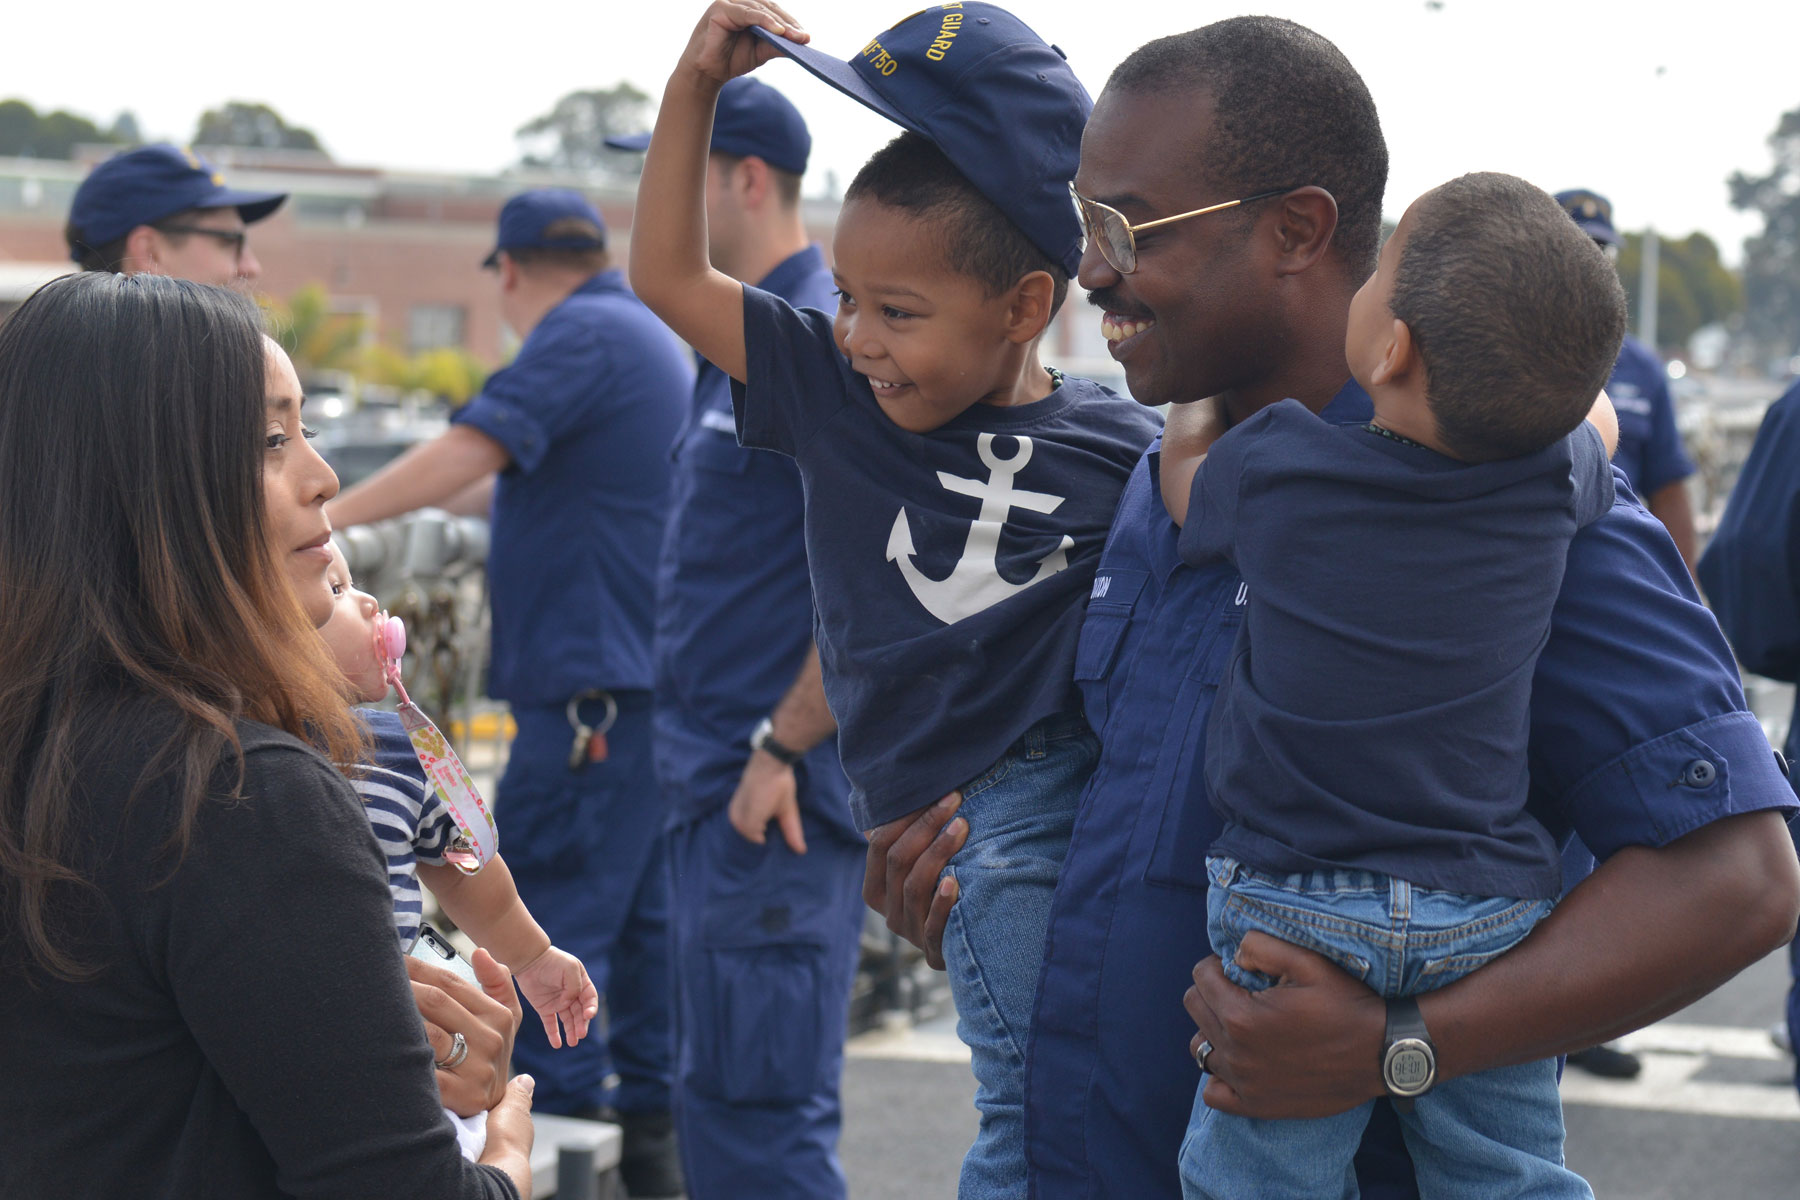 Coast Guard Cutter Returns Home Following Participation in RIMPAC